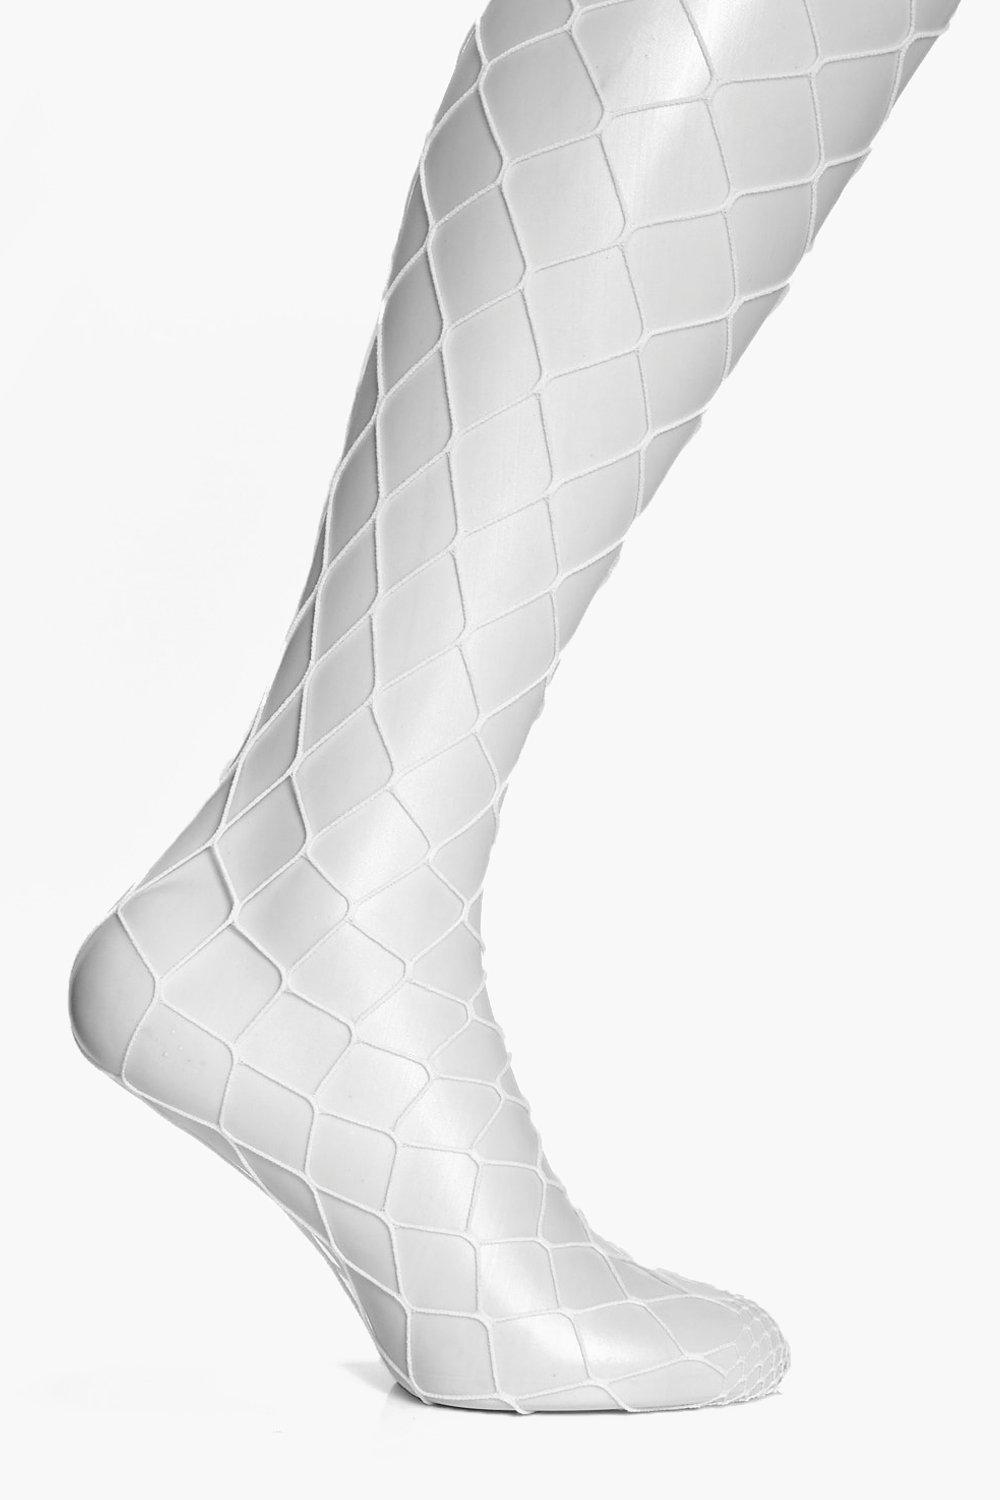 Erin White Large Fishnet Tight - white - Plus Erin